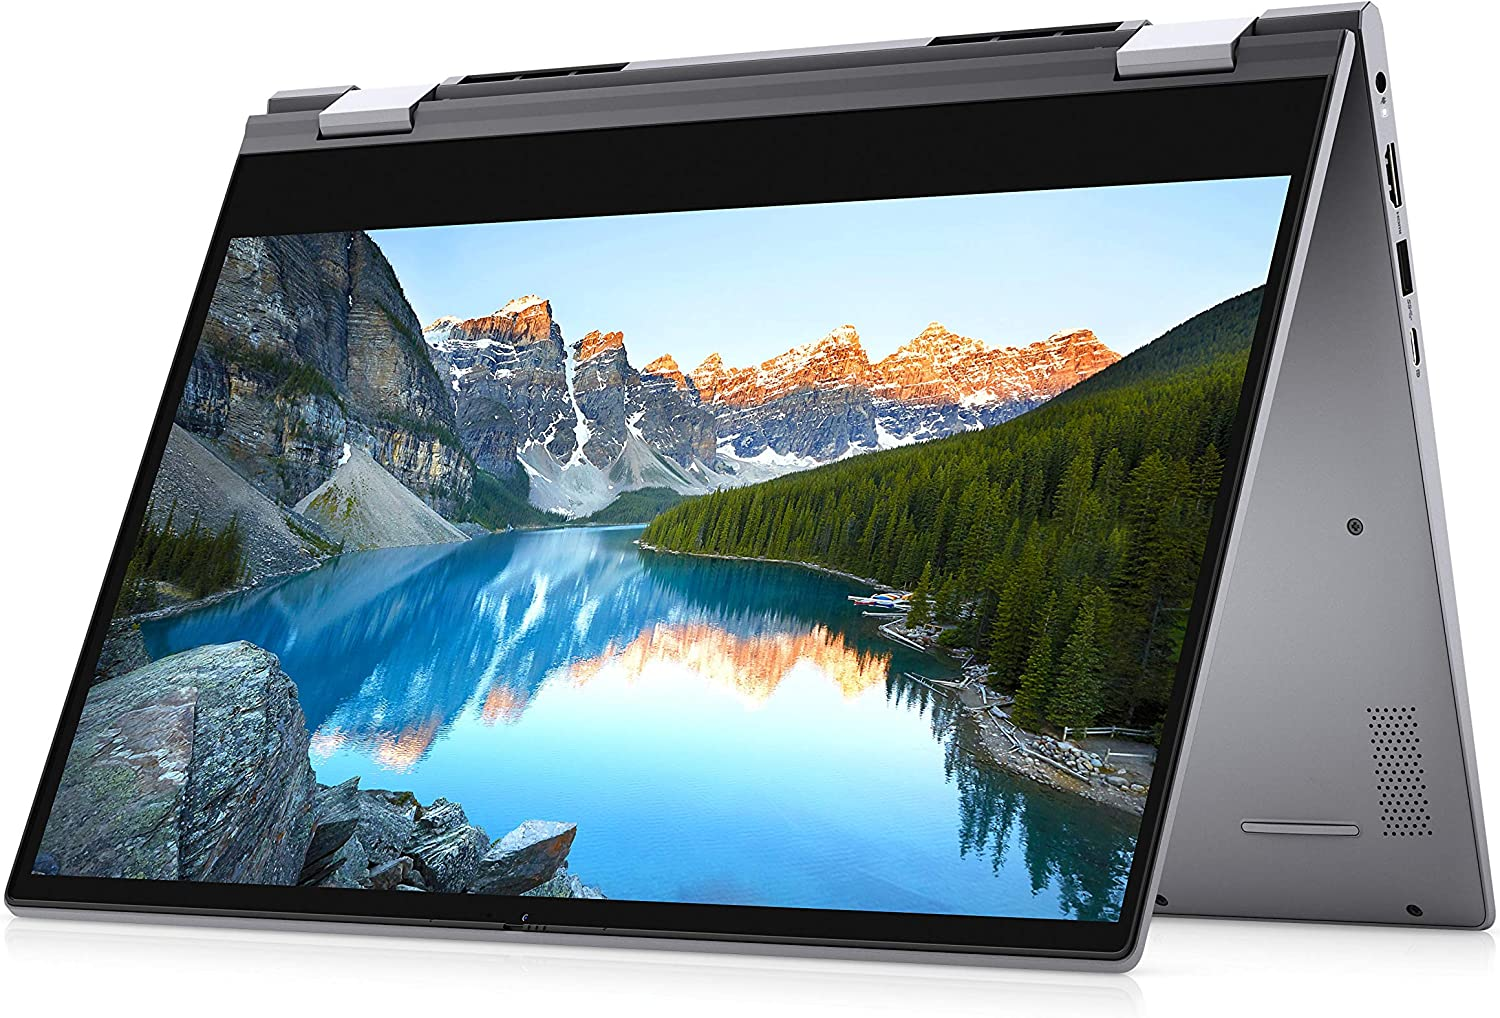 2021 Dell Inspiron 5000 Series 2-in-1 Laptop 14 inch FHD IPS Touchscreen 10th Gen Intel i5-1035G1- 8GB DDR4 512GB NVMe SSD Win 10 Home Backlit Keyboard w/ Ontrend 32GB USB Drive